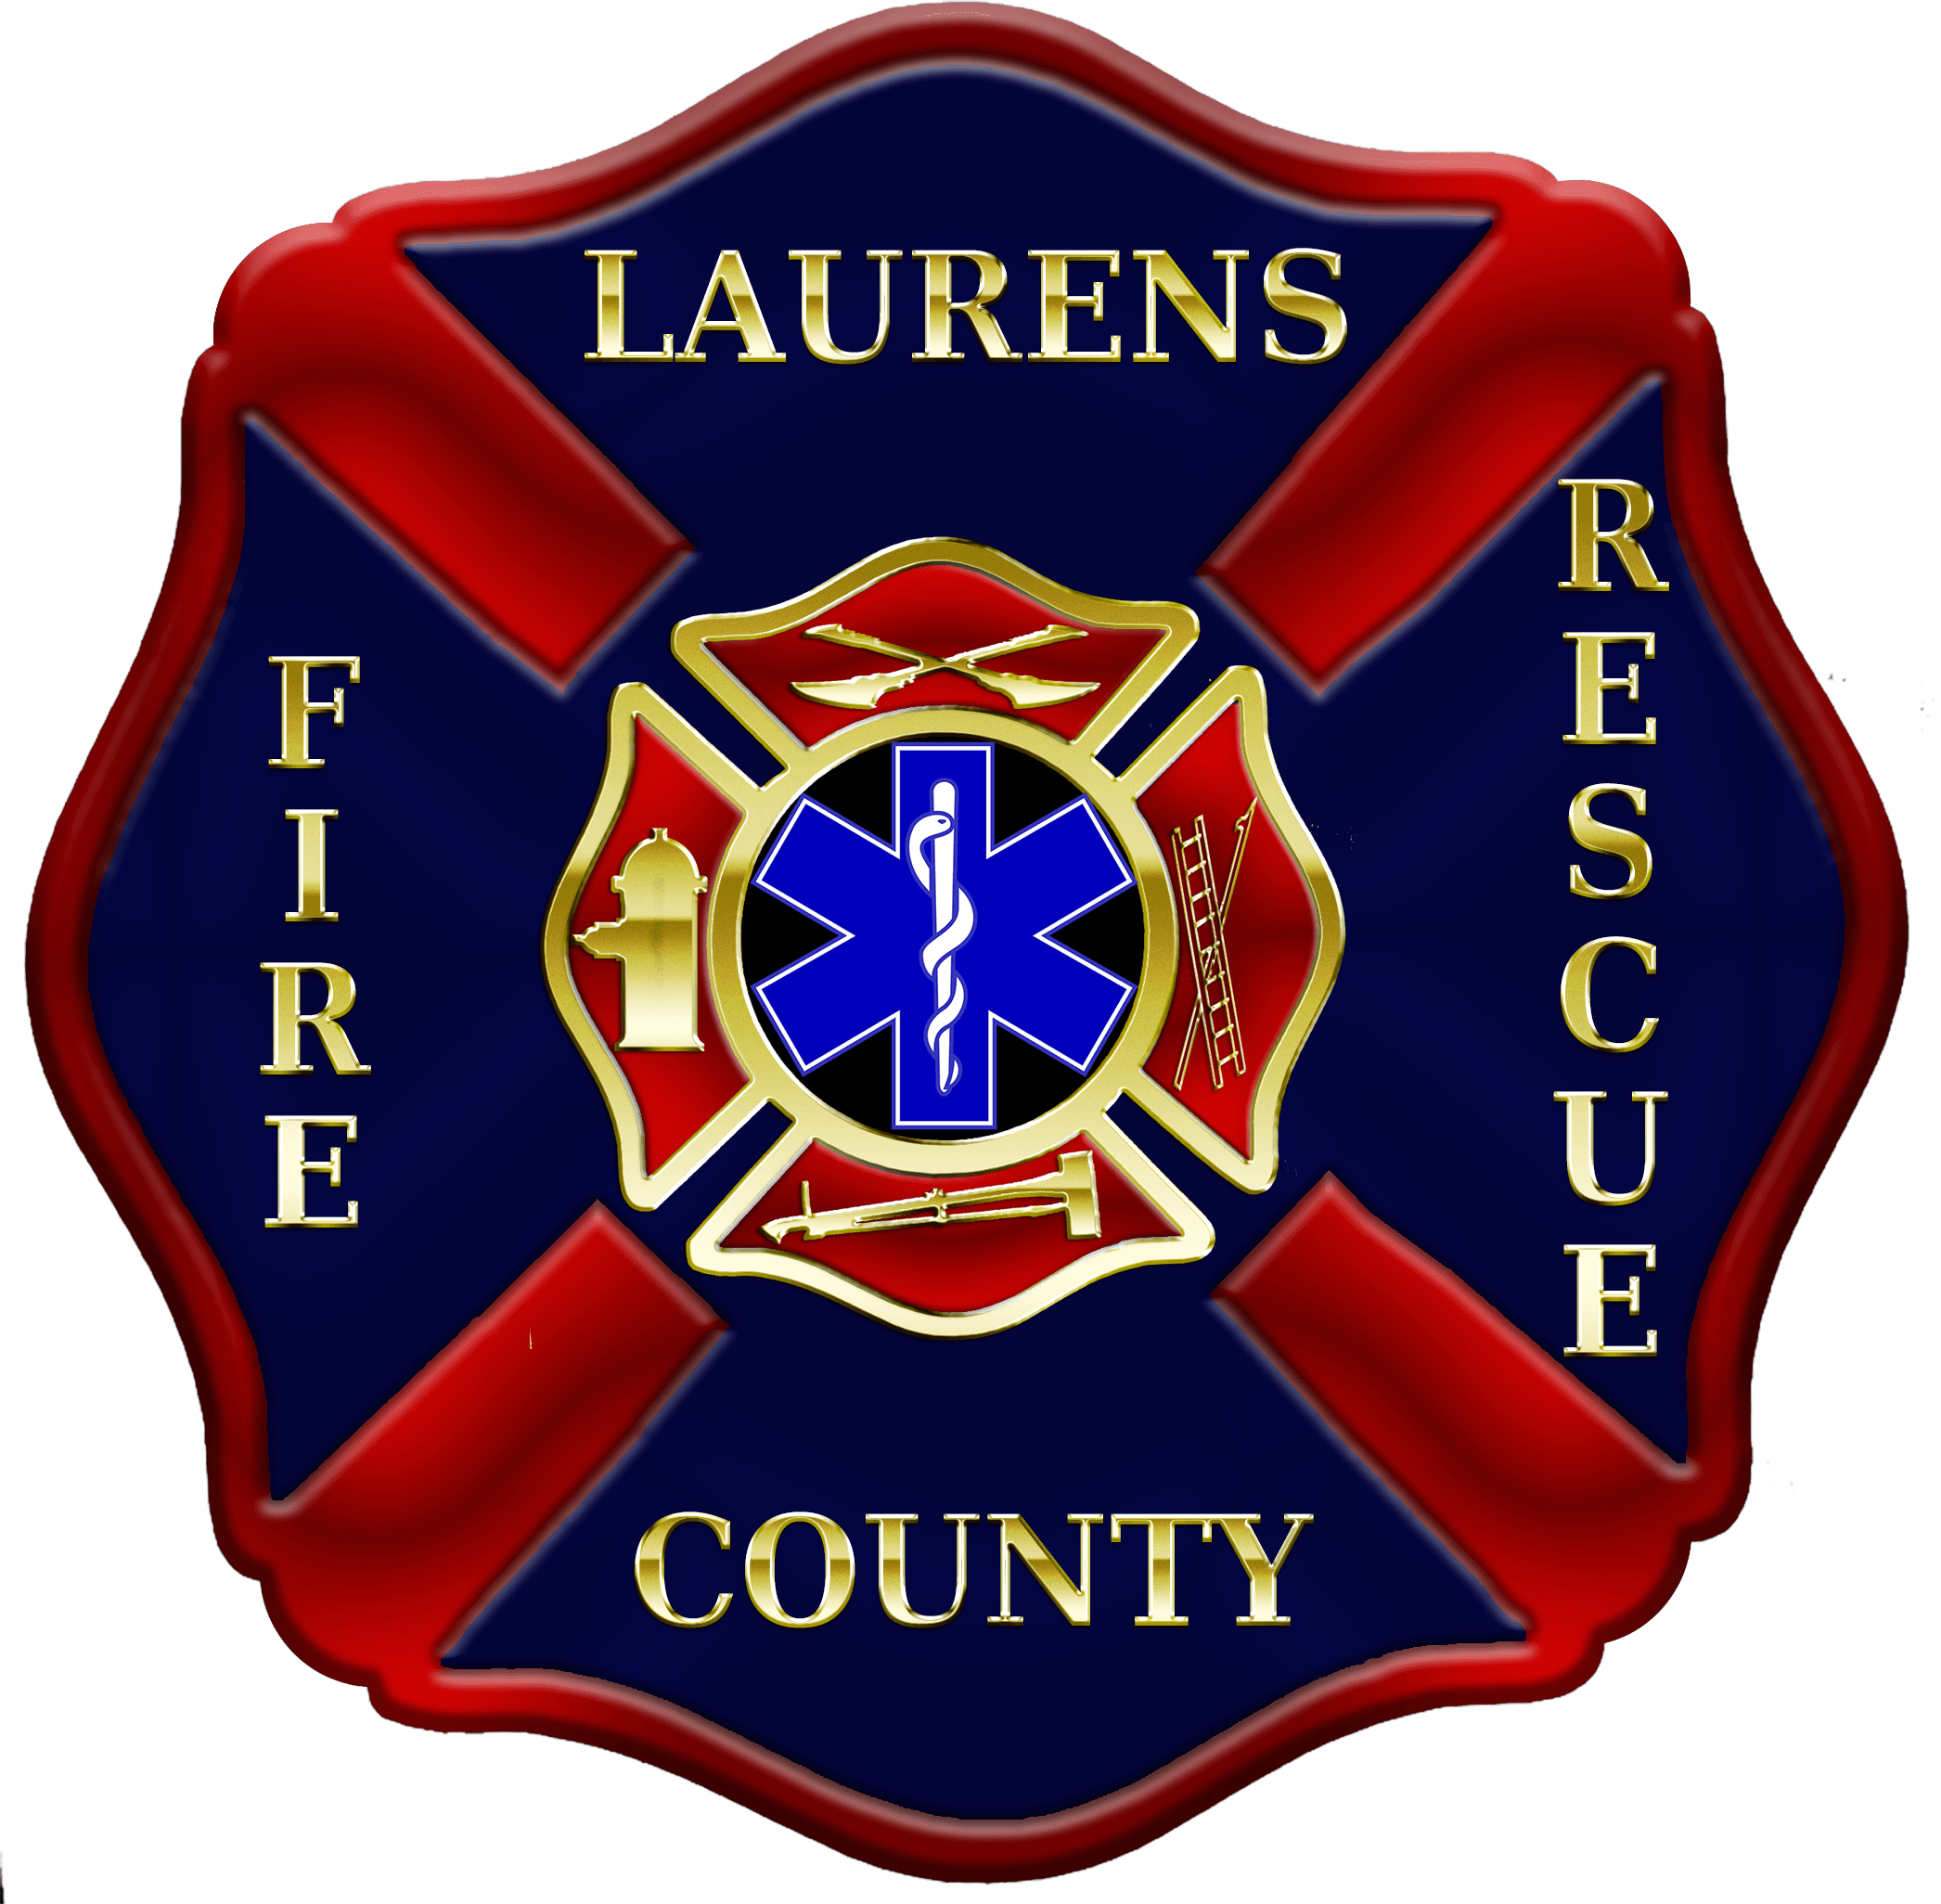 Laurens County Rural Fire Department